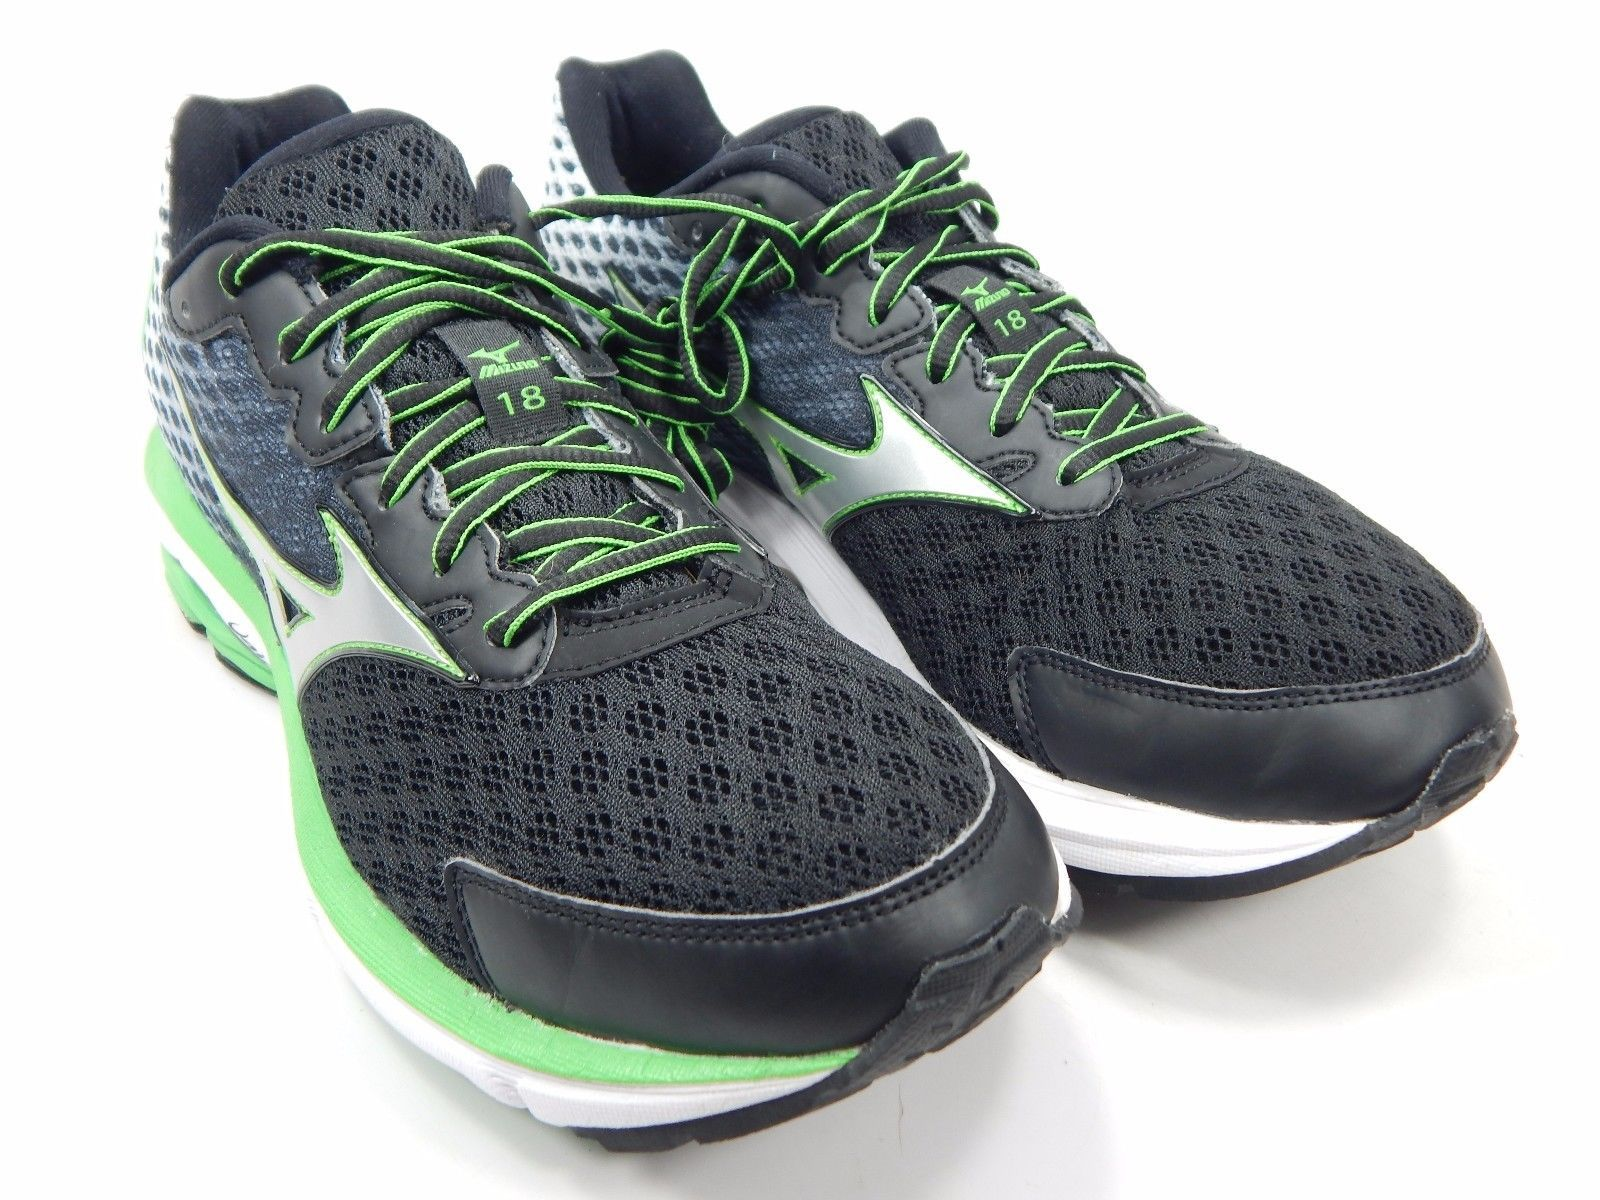 official photos 81a64 51166 Mizuno Wave Rider 18 Men's Running Shoes Size US 8.5 M (D) EU 41 Black White